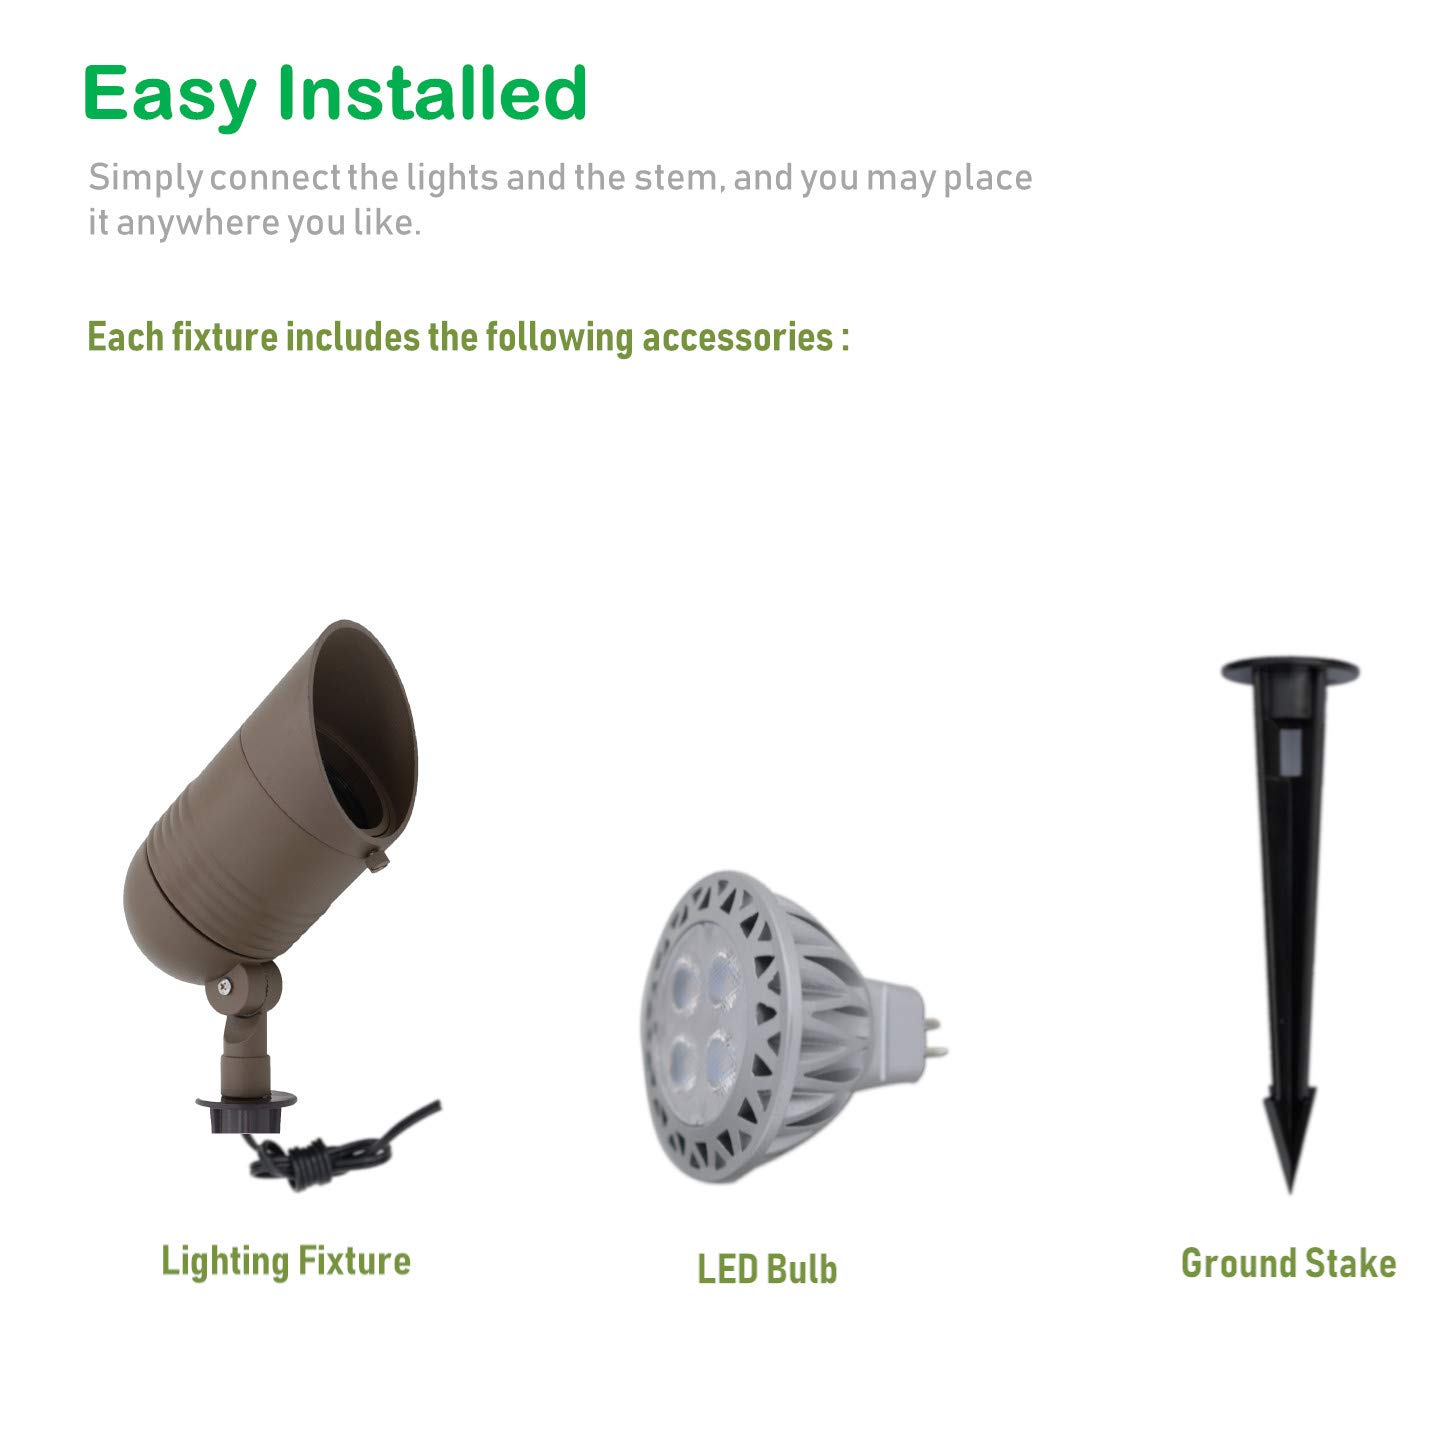 Lumina Low Voltage Landscape Lights Cast-Aluminum Waterproof Outdoor Spotlights for Walls Trees Flags Decorative Light W/Warm White 5W LED Bulb and ABS Ground Stake SFL0106-BZLED4 (4PK) by Lumina Lighting (Image #2)